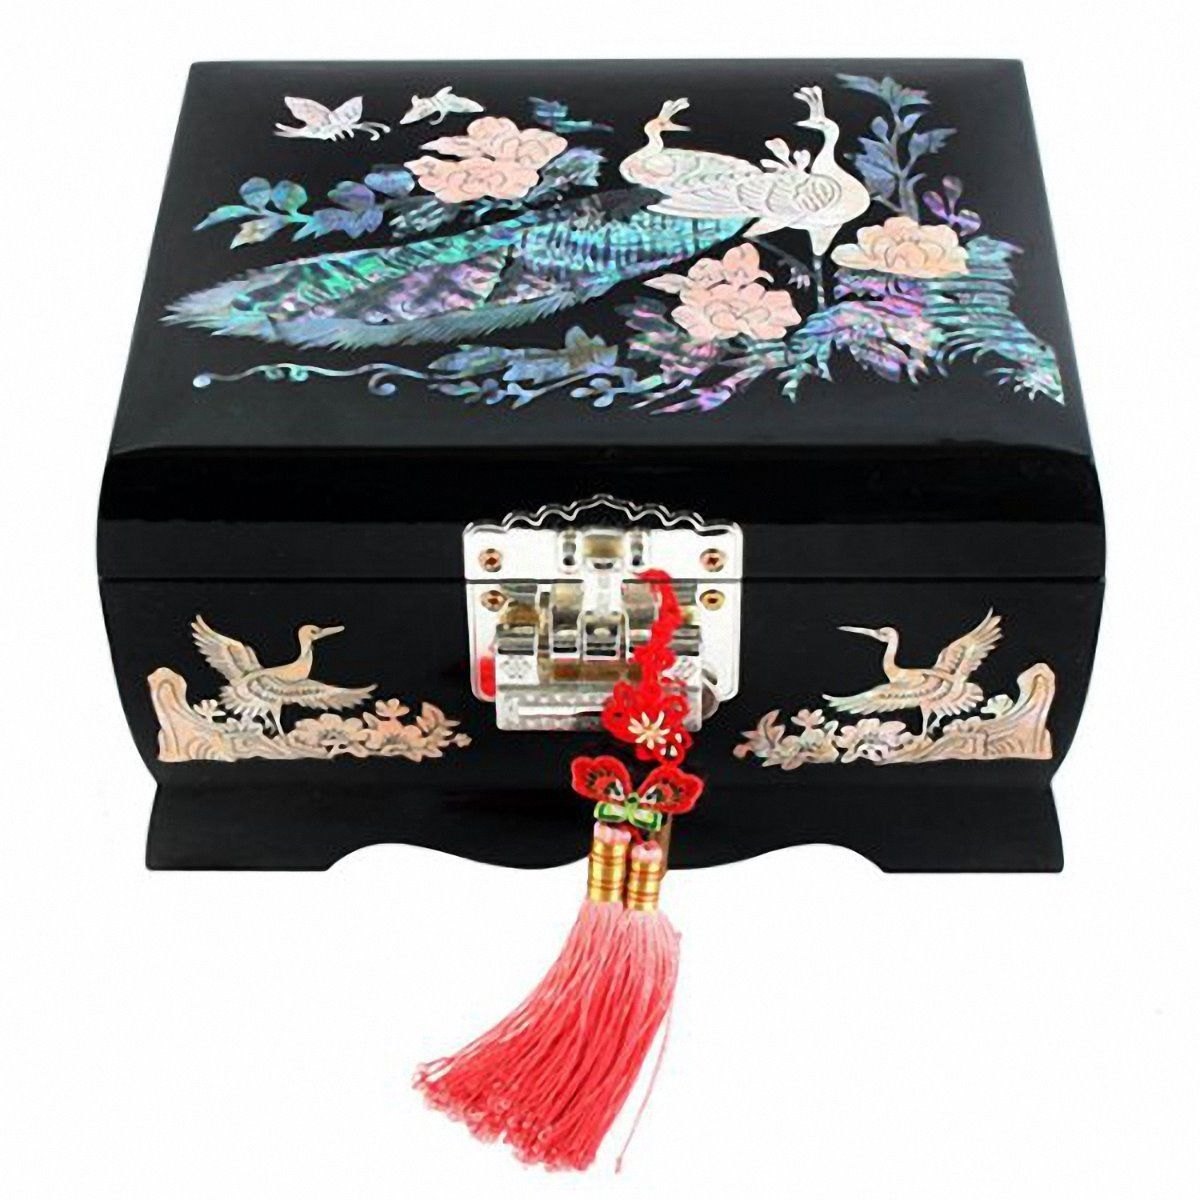 Jewelry Box Wood Jewel Case Organizer Watch Music Chest Box  Peacock 5Colors(B)